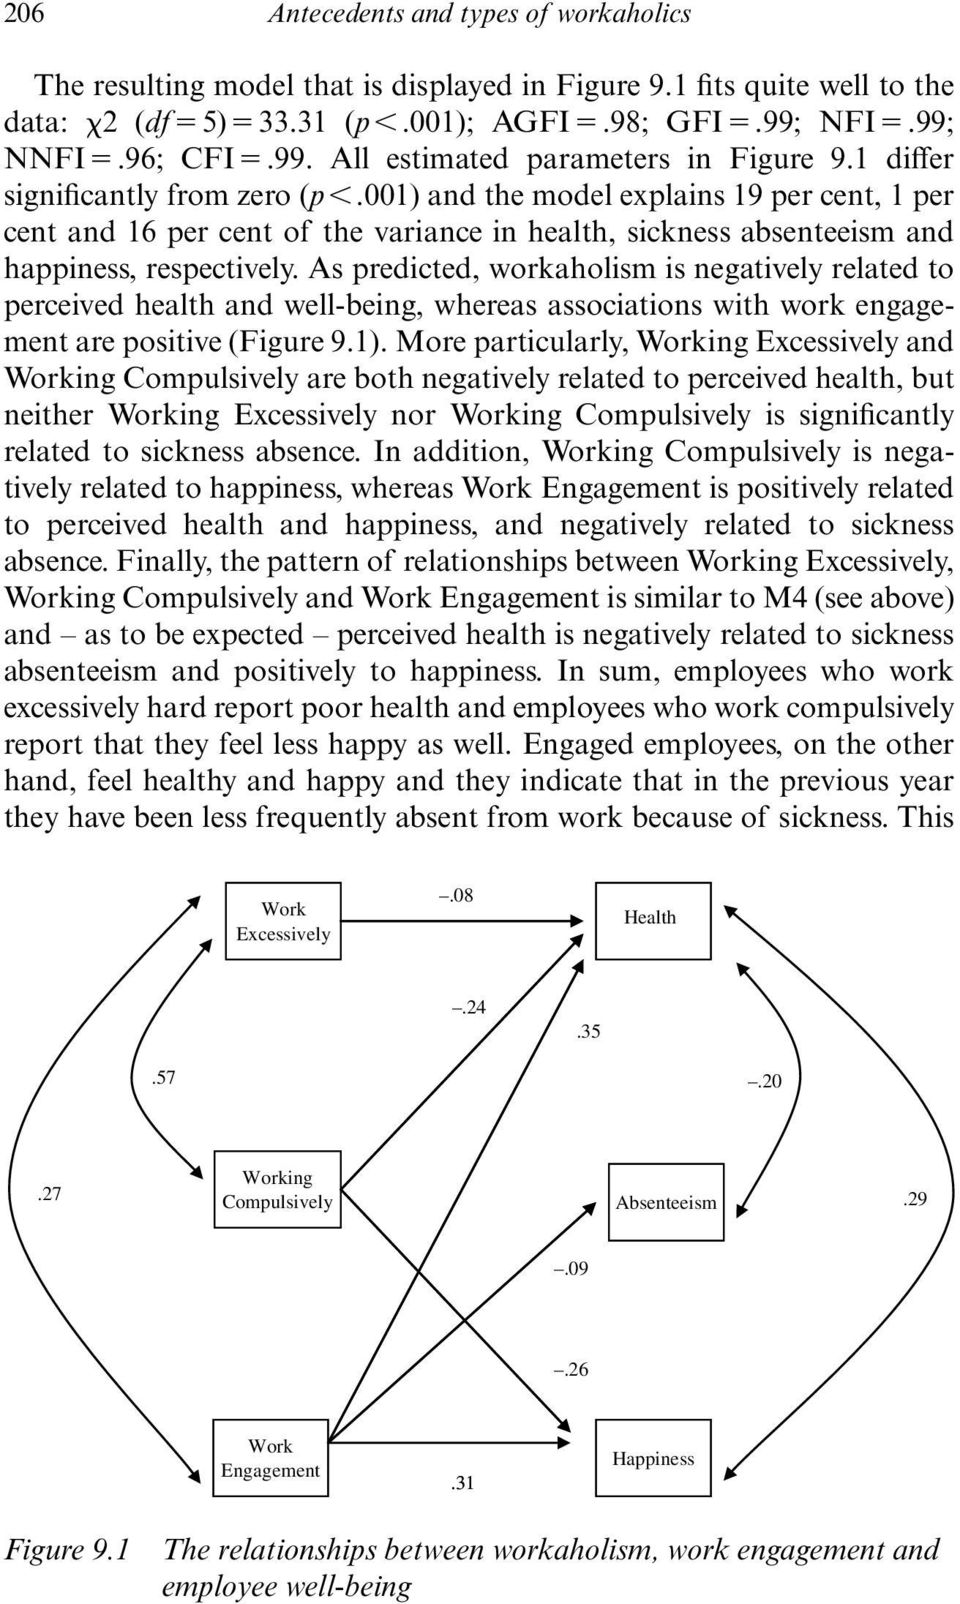 As predicted, workaholism is negatively related to perceived health and well-being, whereas associations with work engagement are positive (Figure 9.1).